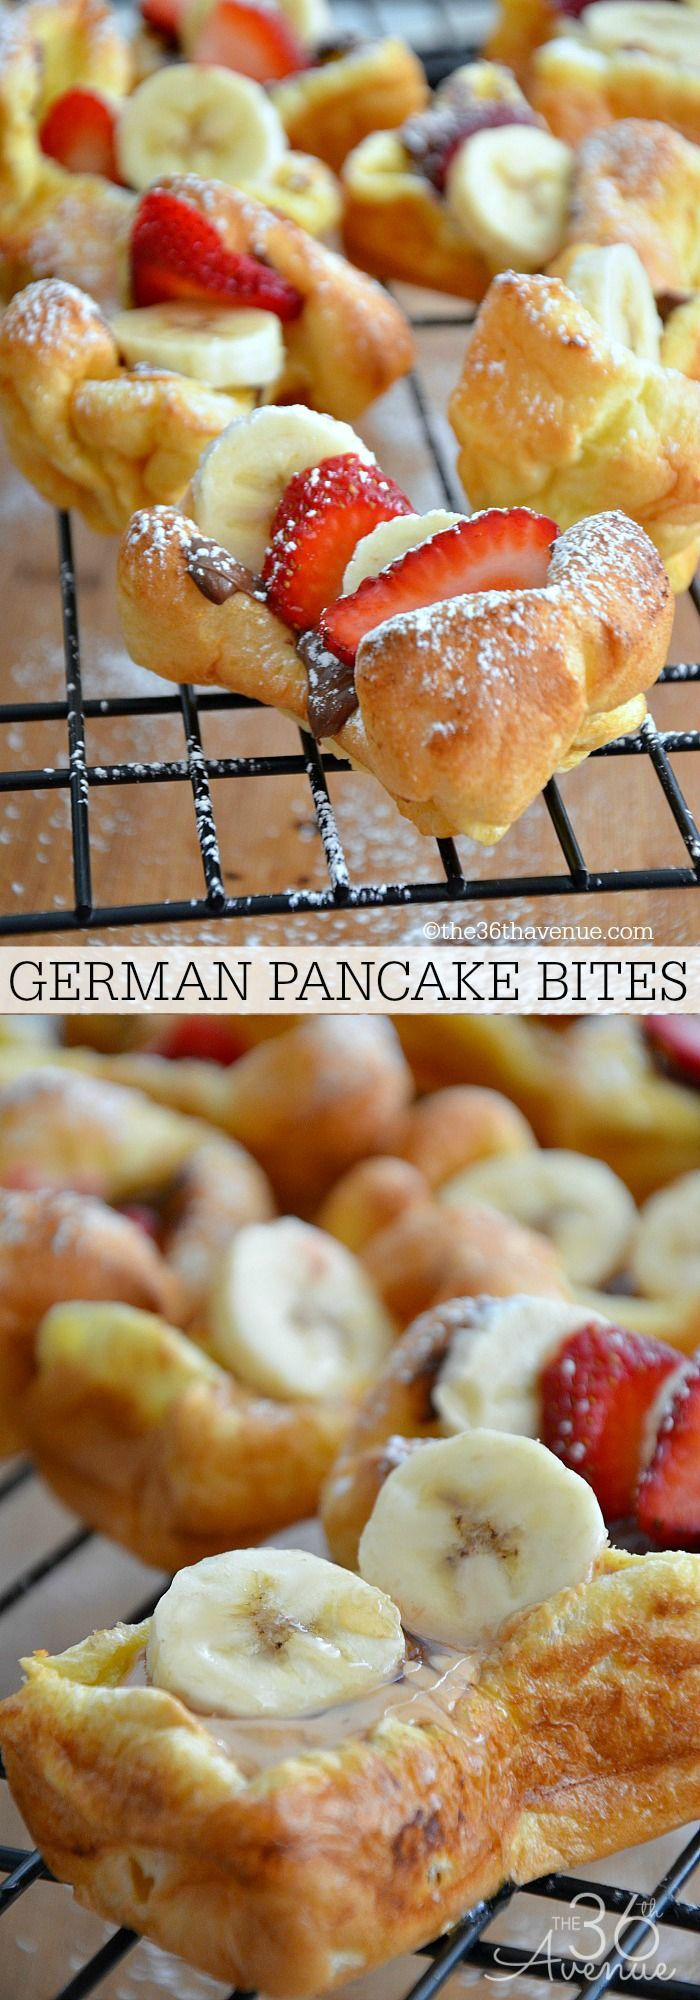 Pancake for sneakers sale Recipe German Pancakes German   and skateboard Pancakes  Recipes Easy   Pancake Bites   Bites